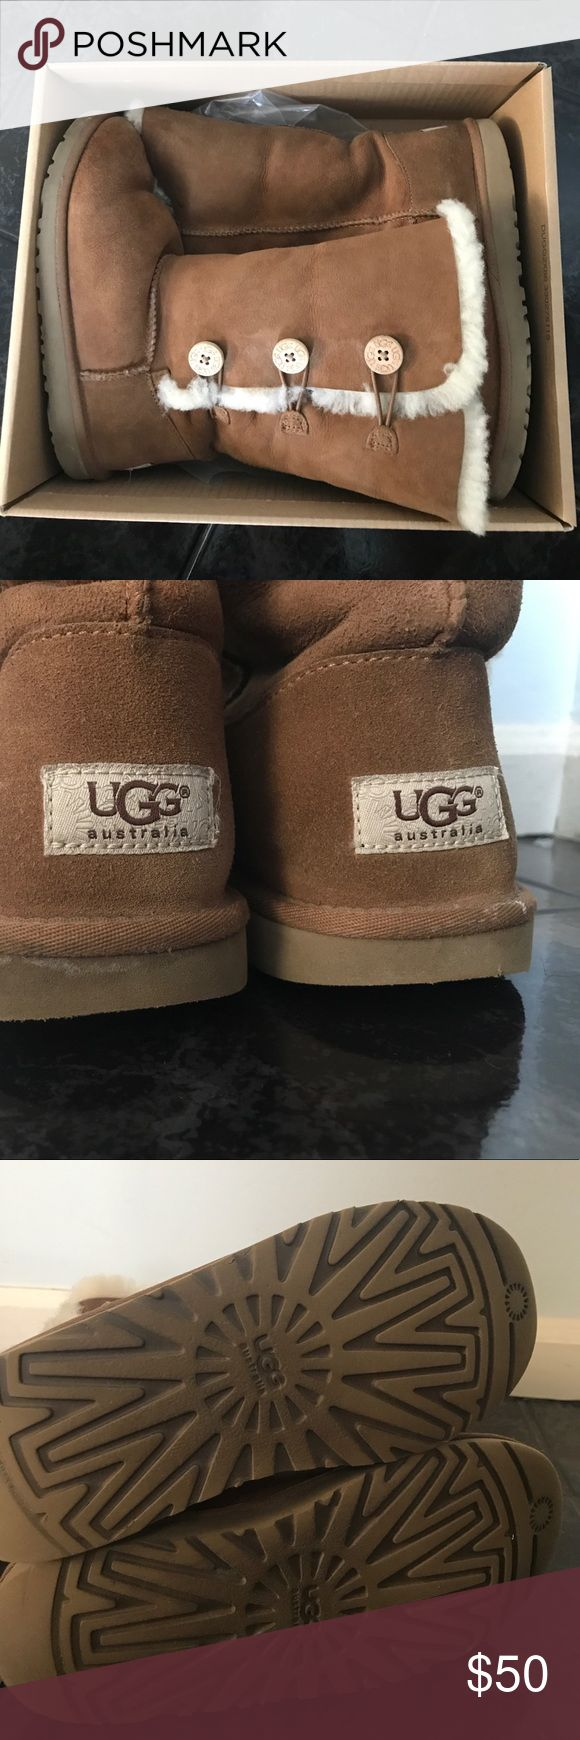 Bailey Button Triplet II Kids Kids Bailey Button Triplet II Size 5, color Chestnut. Warm & Cozy boots for this winter, make an offer!❄️❄️❄️ UGG Shoes Boots